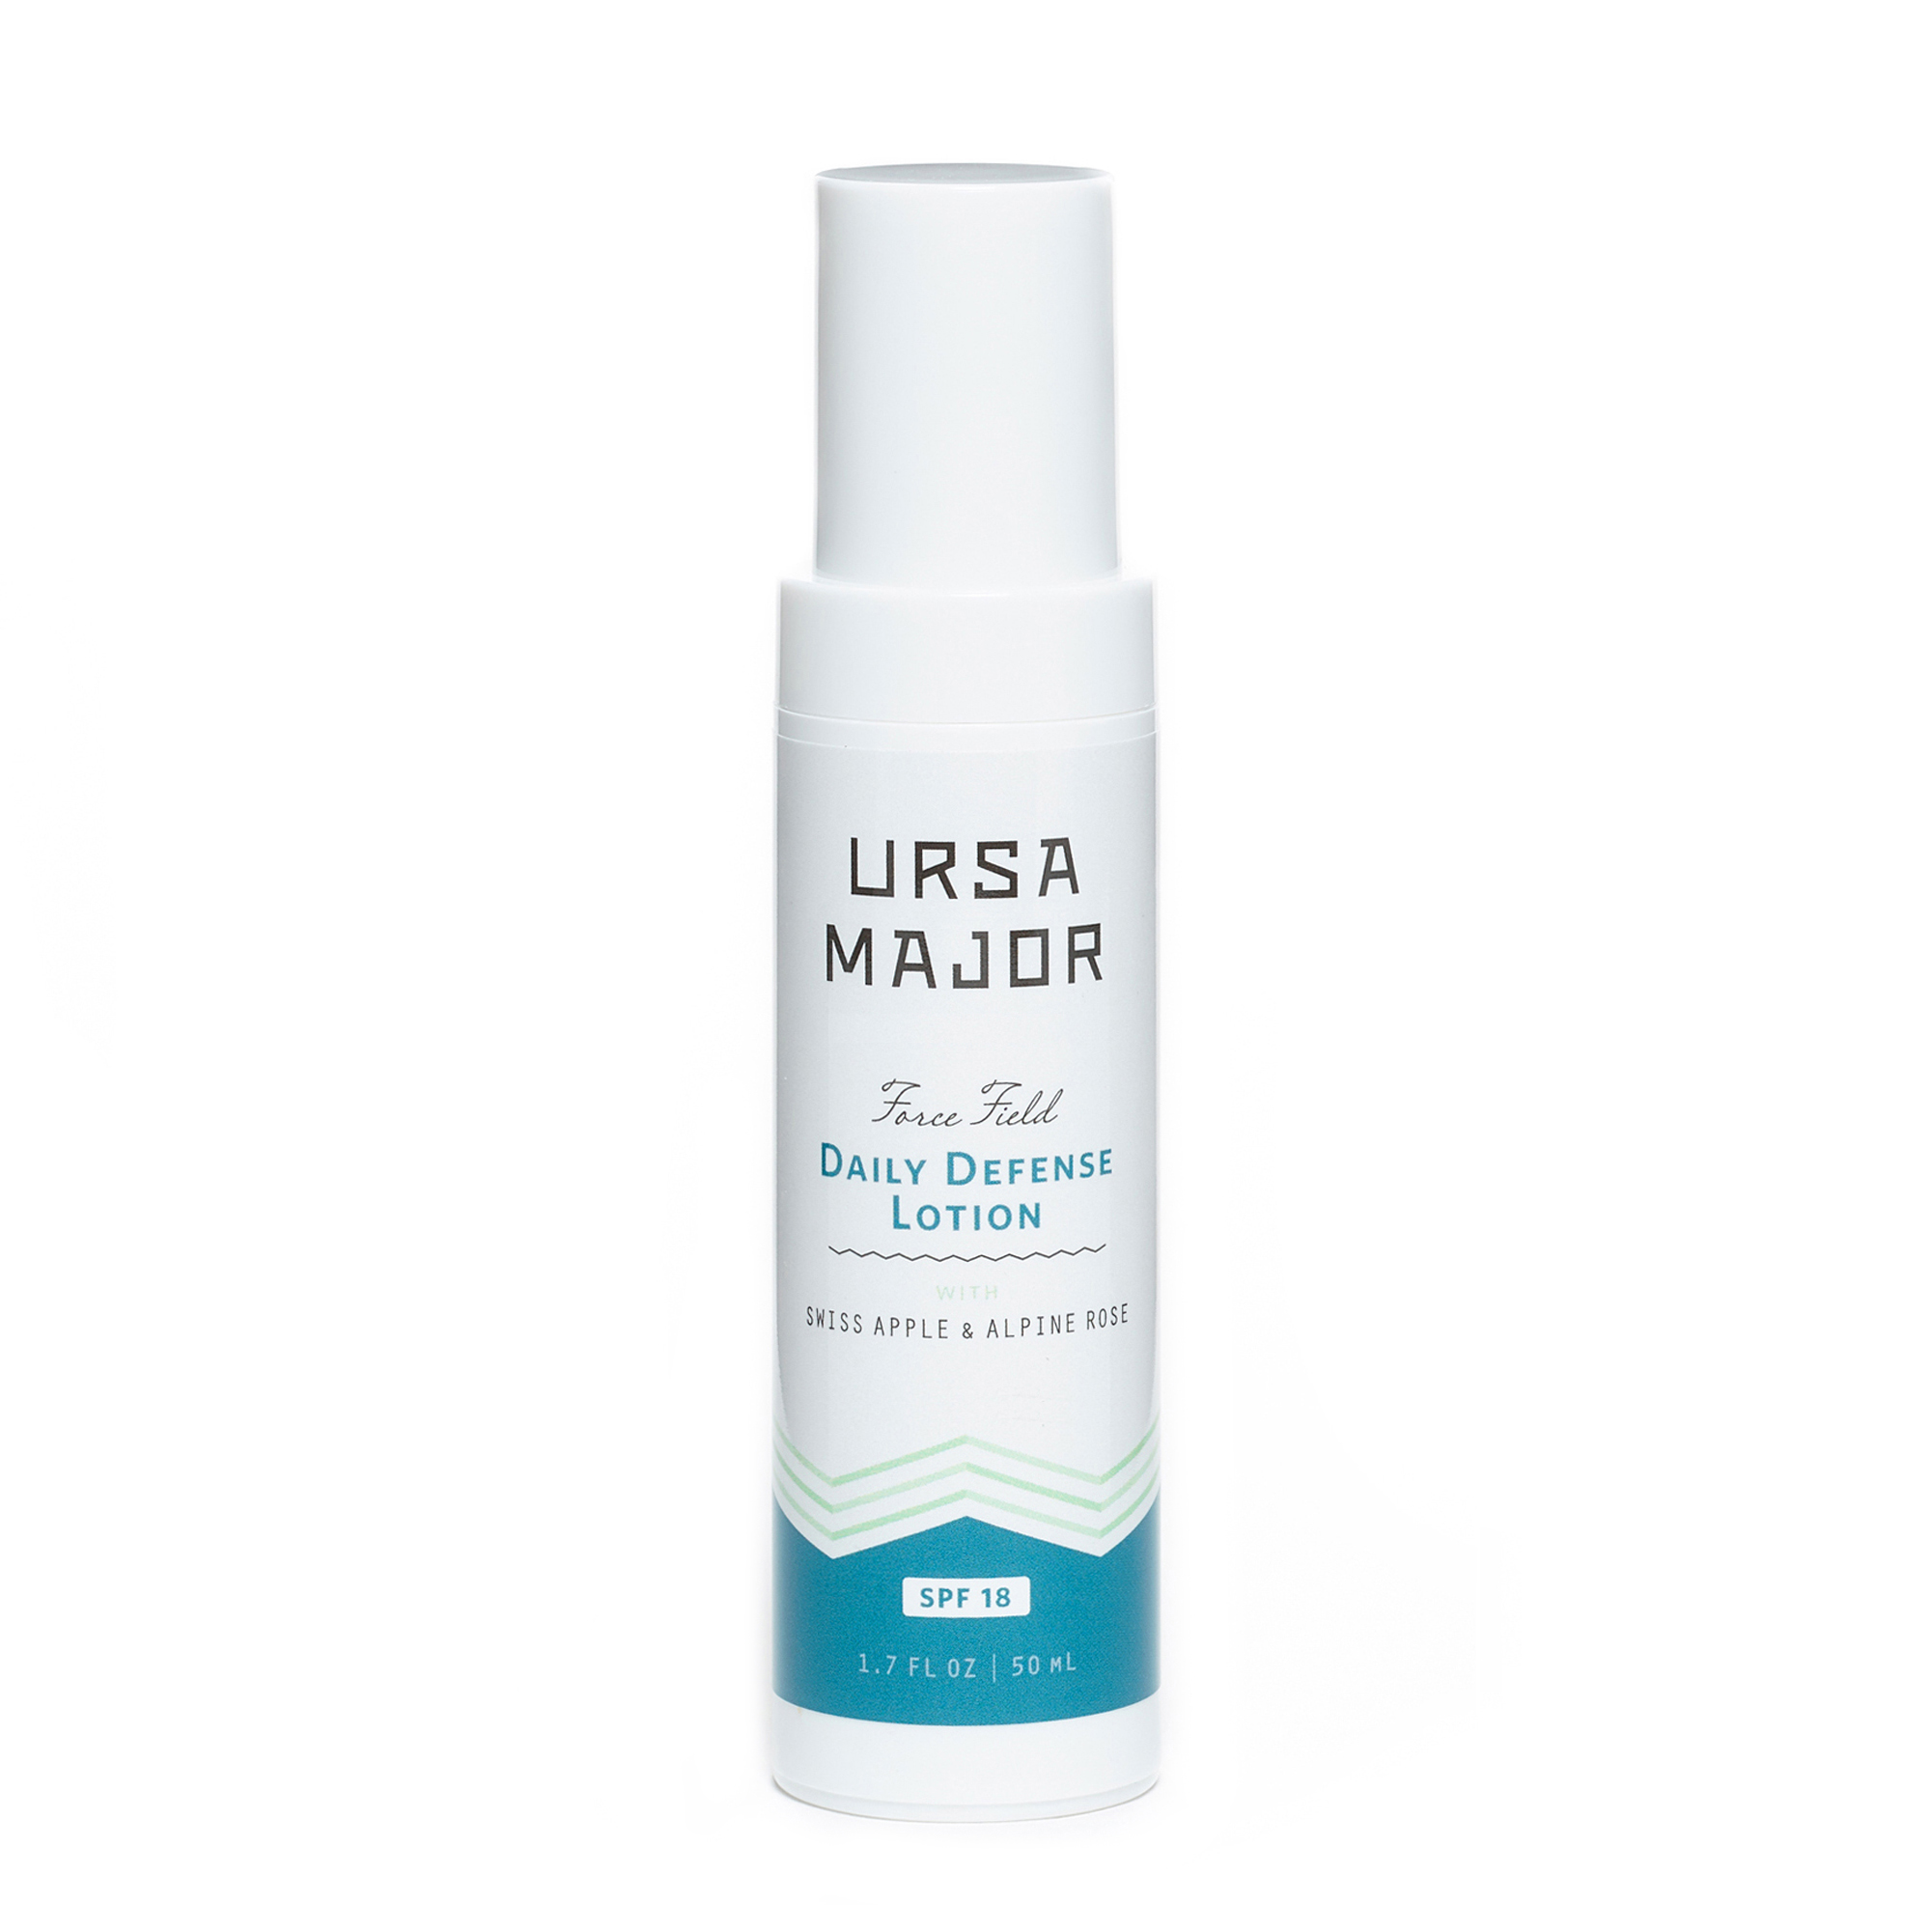 Ursa Major Daily Defense Lotion